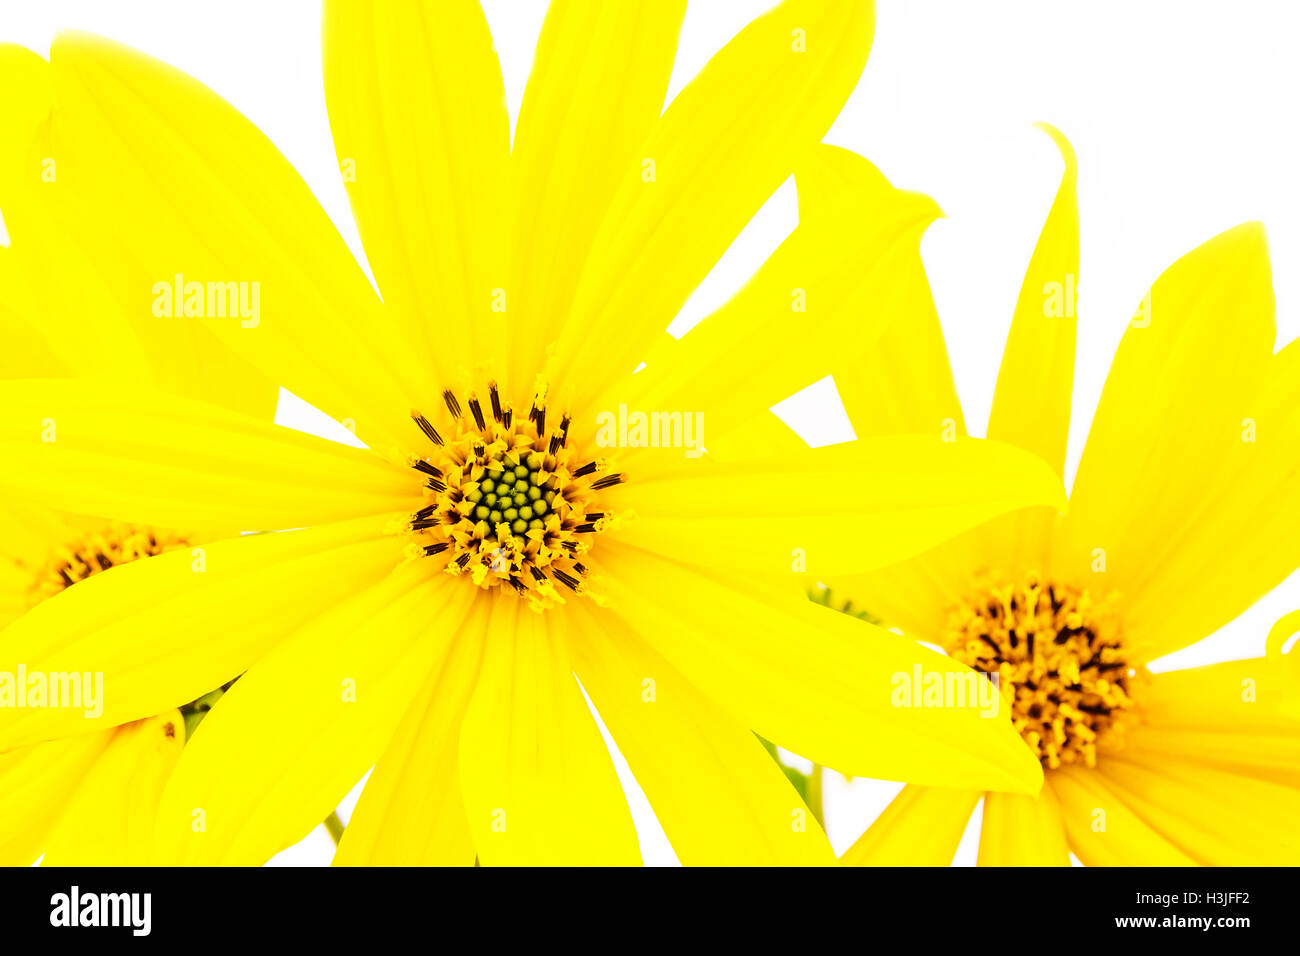 Yellow flower with thin petals on light white background stock photo yellow flower with thin petals on light white background mightylinksfo